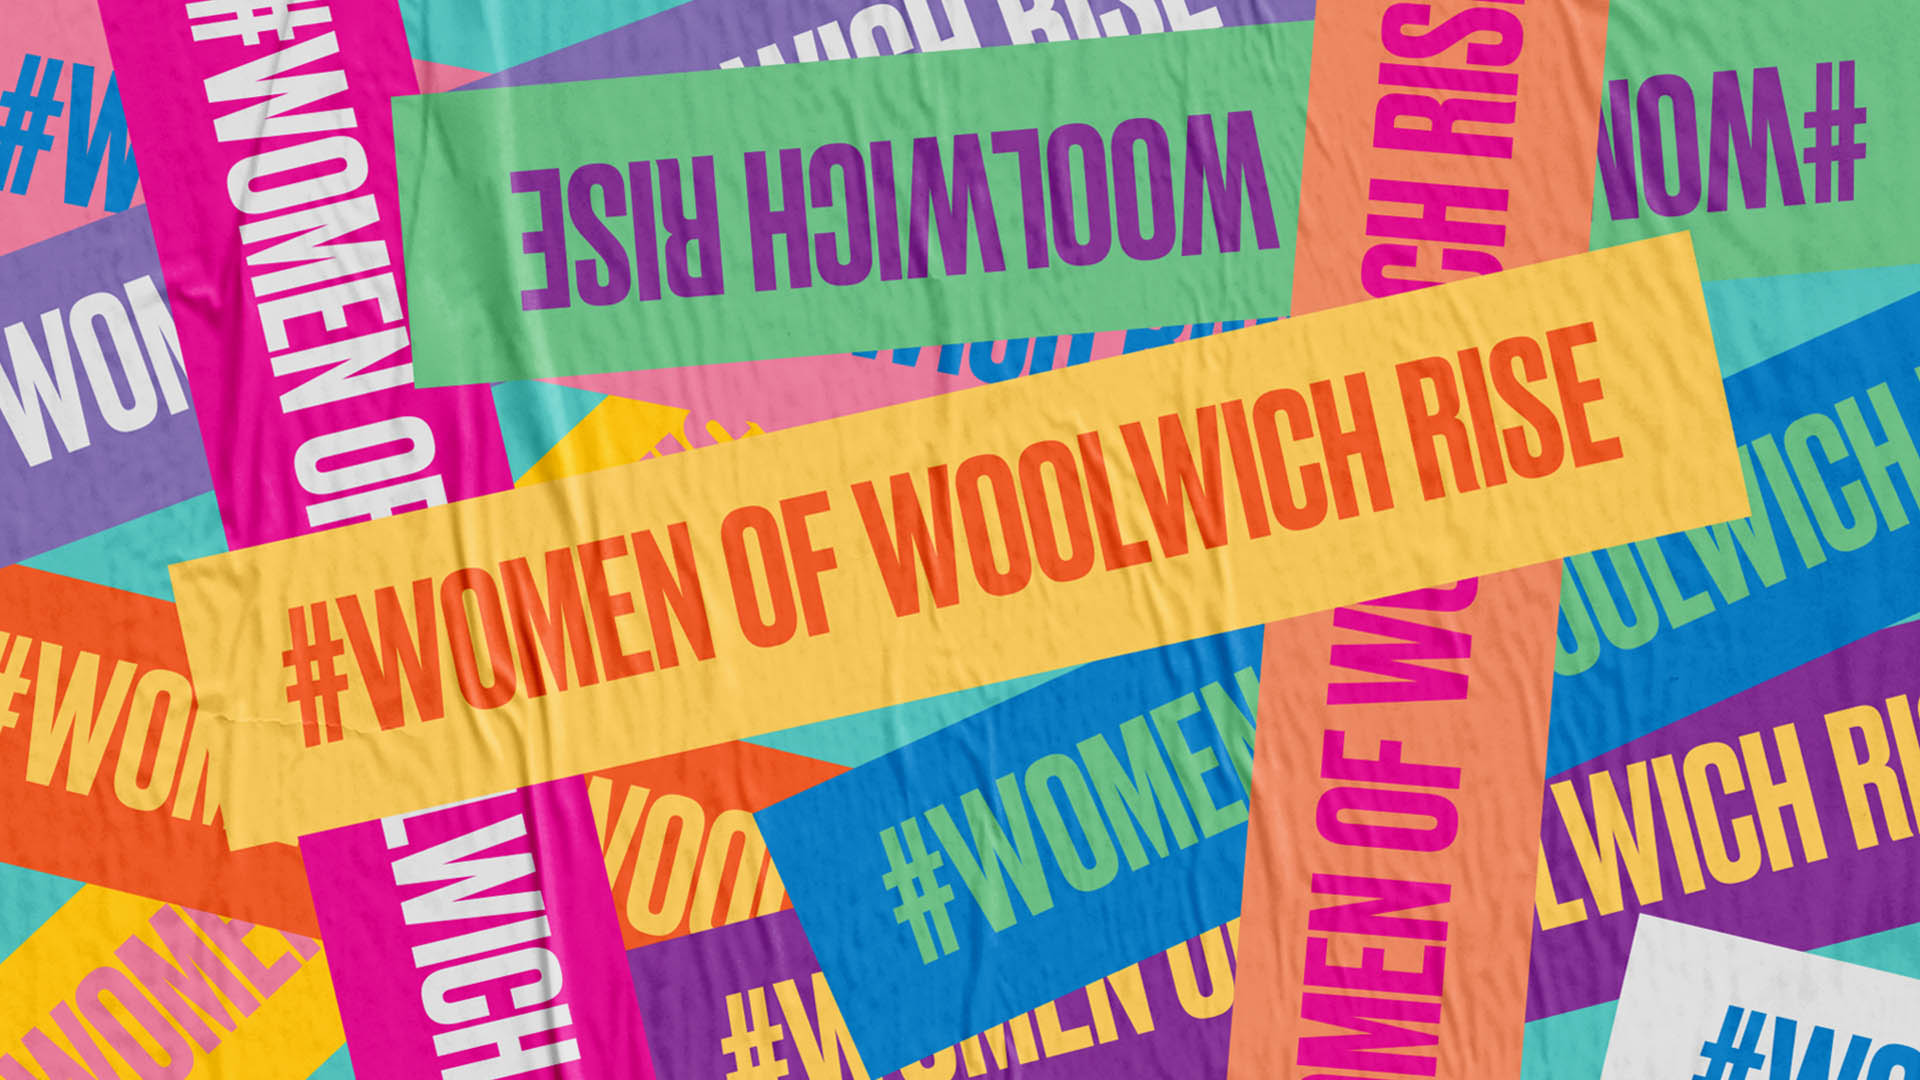 Women of Woolwich Poster design